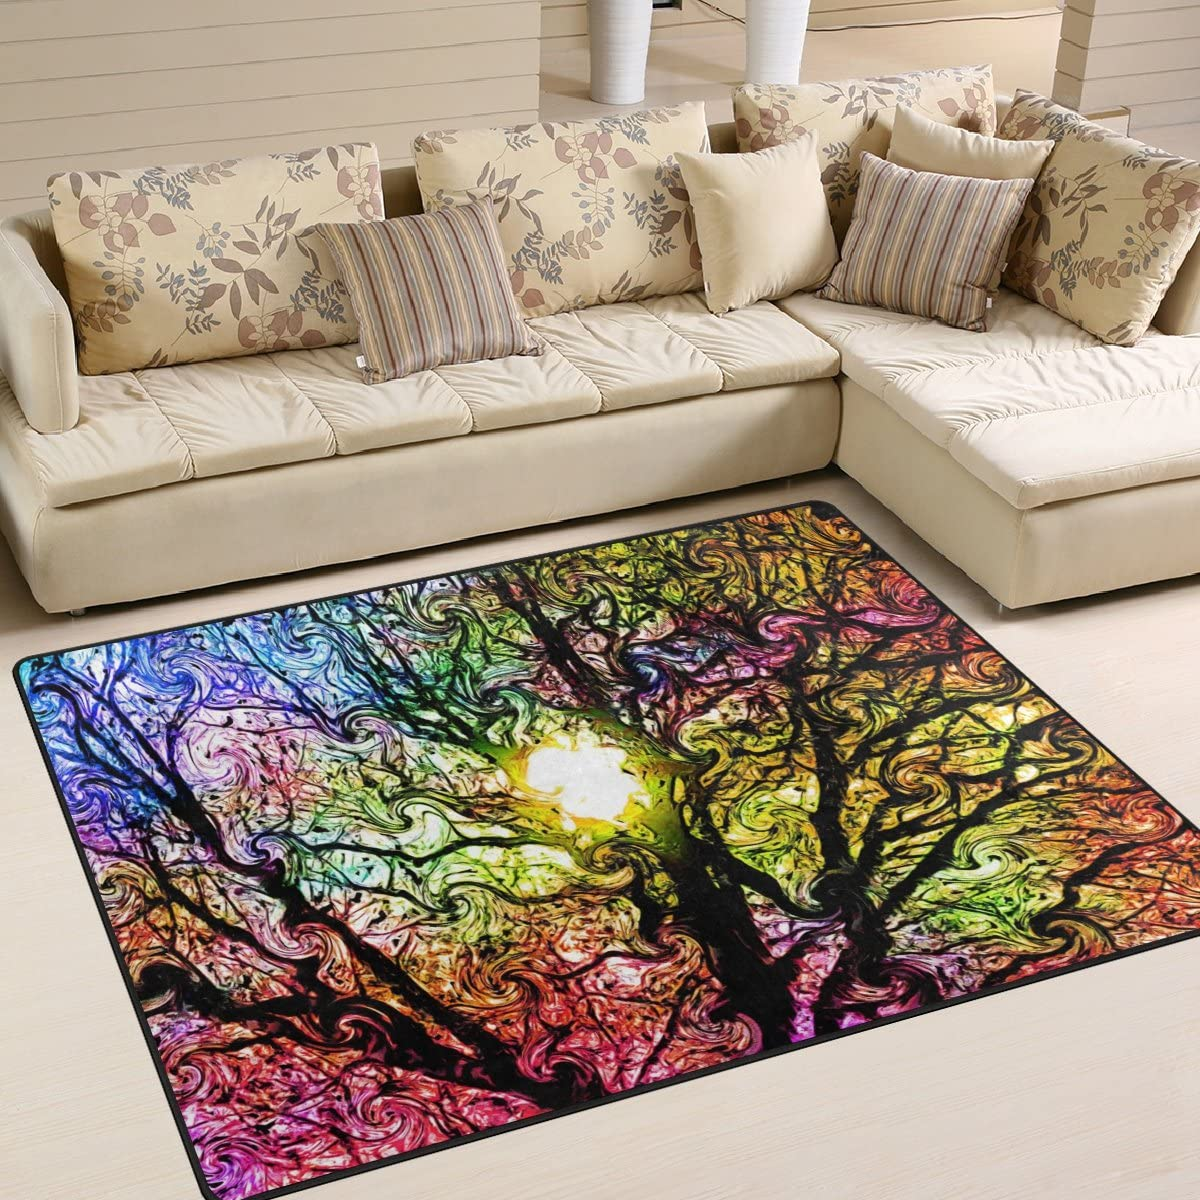 IMOBABY Art Tree Area Rugs for Living Room Bedroom 4 x5 , Kids Children Carpet Rug Non-Slip Floor Mat Resting Area Doormats